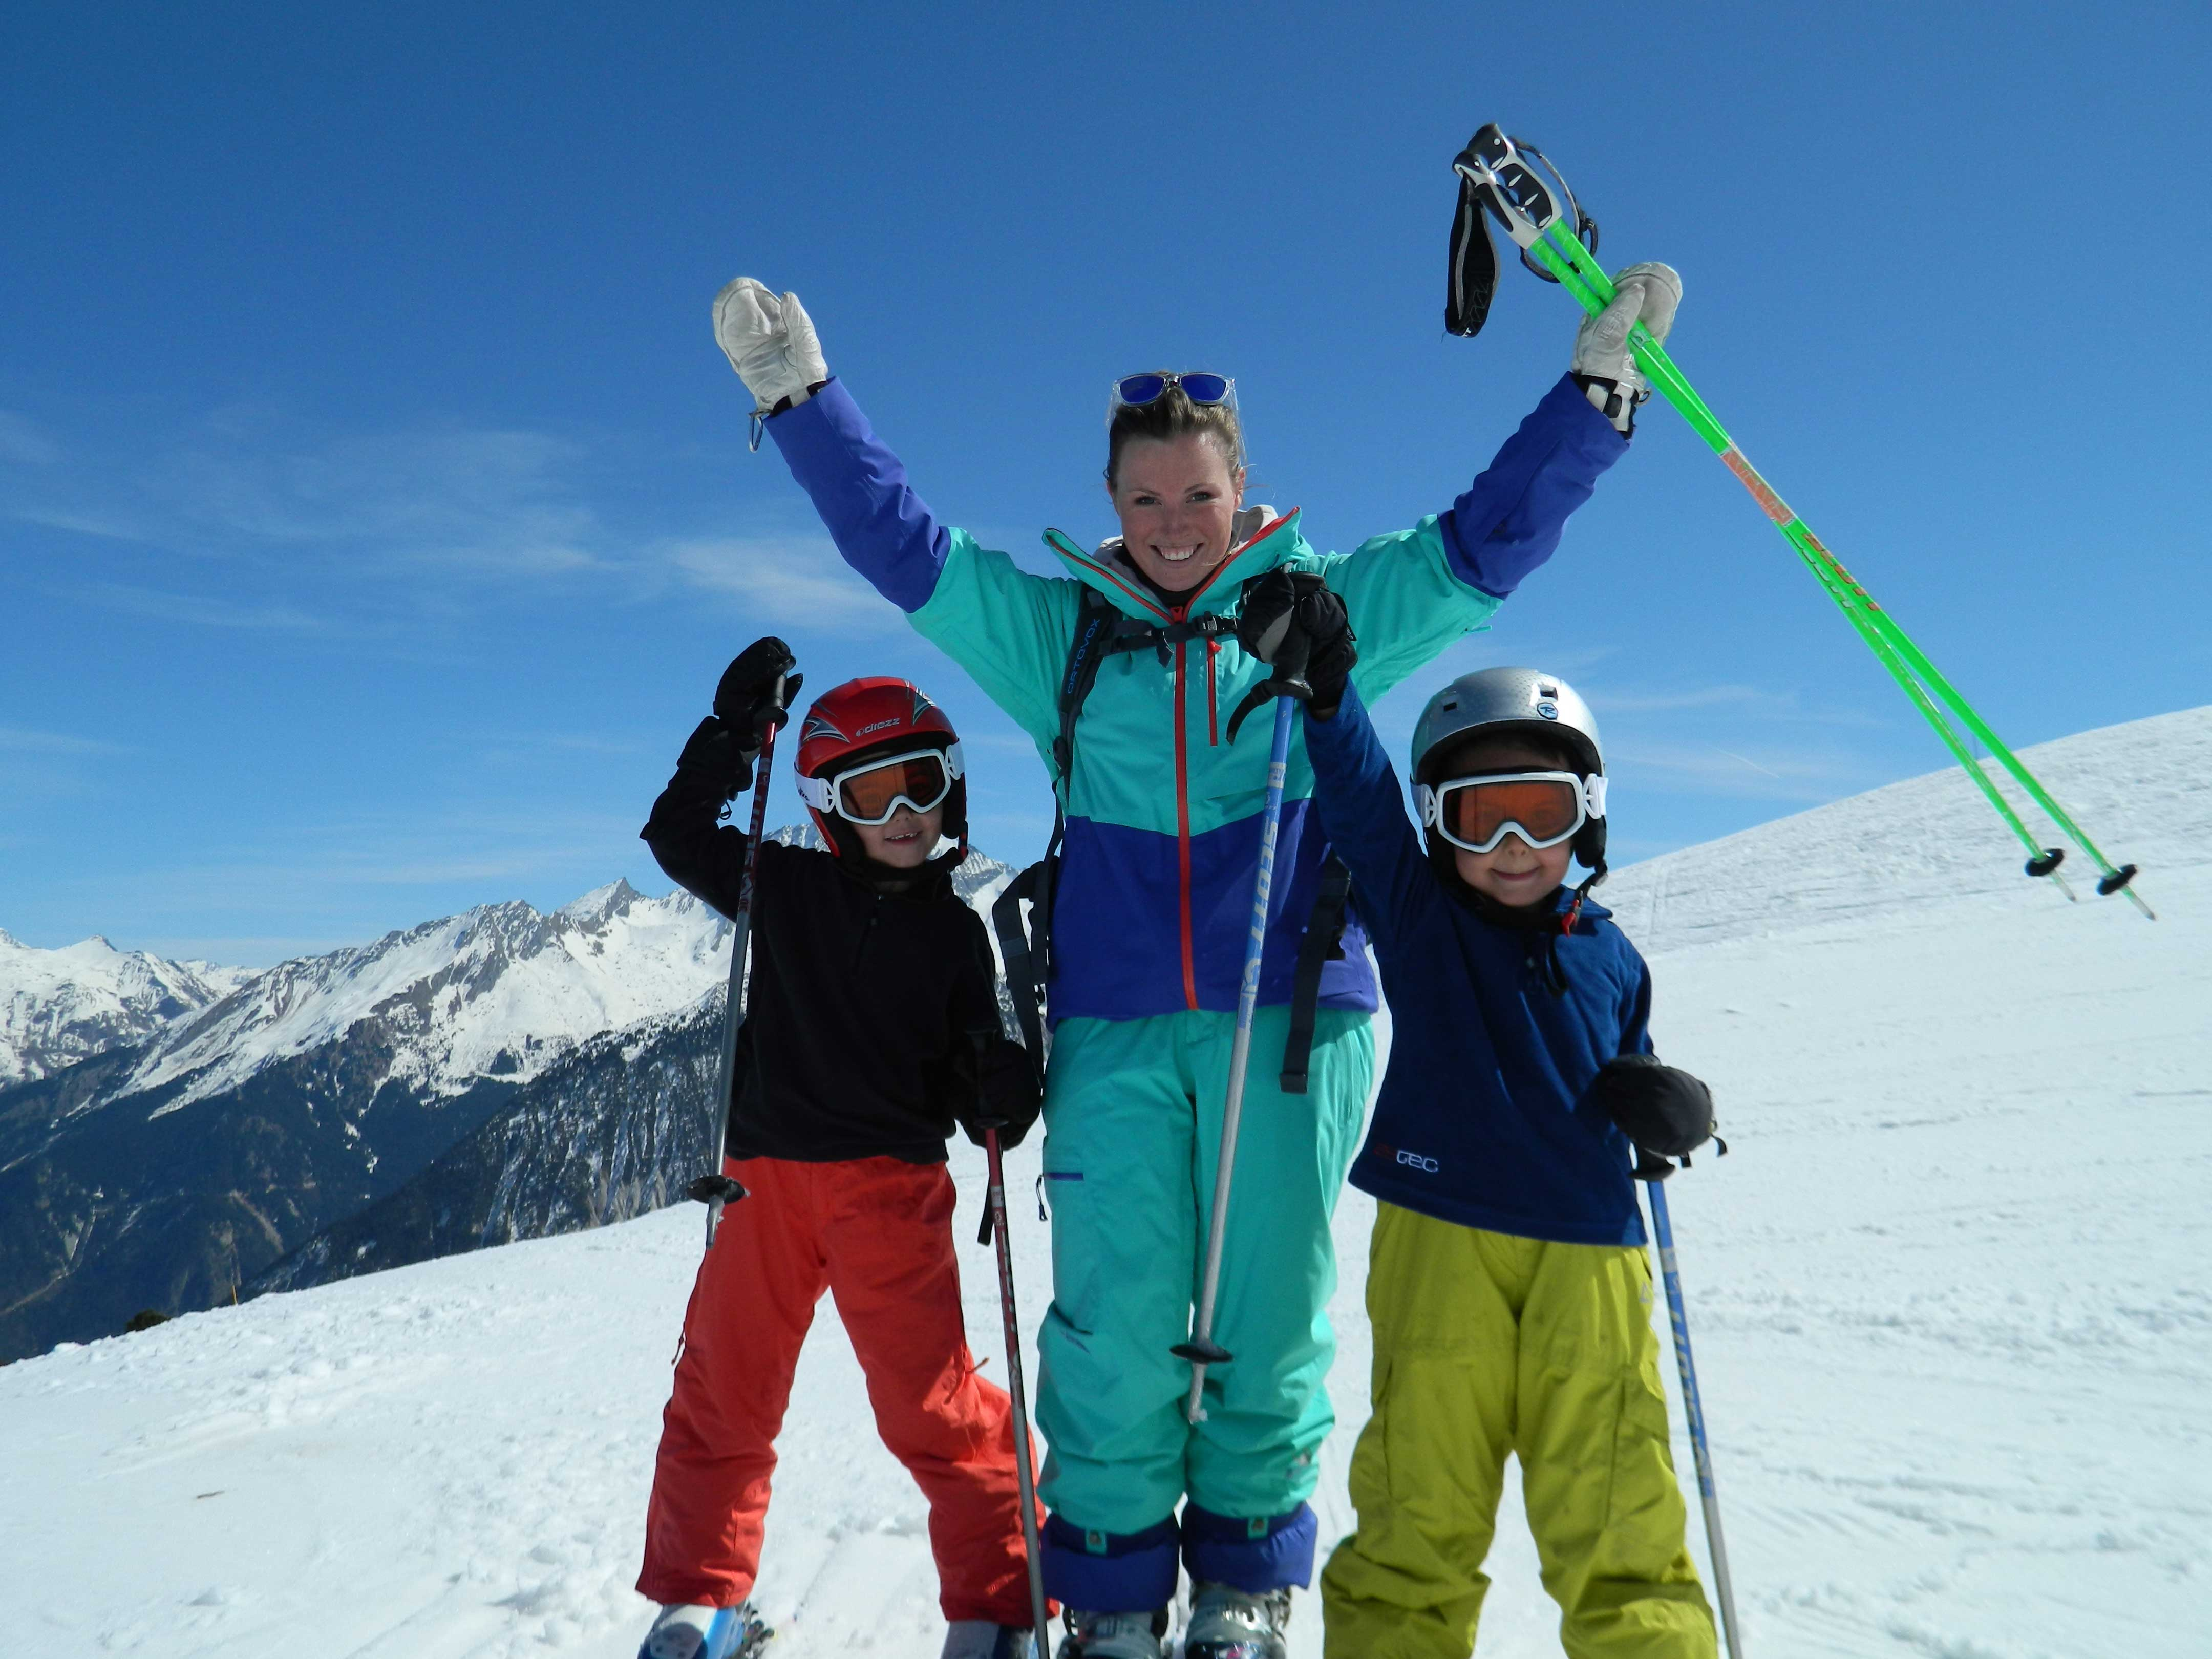 New Generation Ski and Snowboard School - Childrens' Lessons